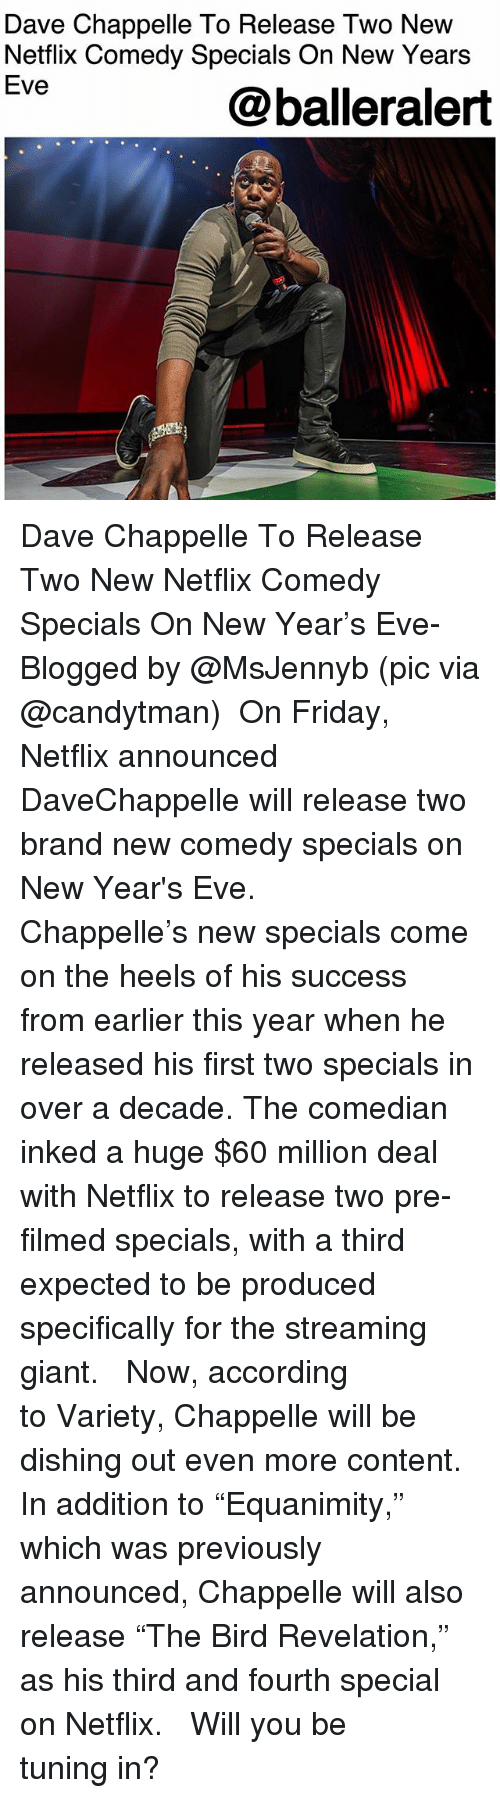 """the comedian: Dave Chappelle To Release Two New  Netflix Comedy Specials On New Years  Eve  @balleralert Dave Chappelle To Release Two New Netflix Comedy Specials On New Year's Eve- Blogged by @MsJennyb (pic via @candytman) ⠀⠀⠀⠀⠀⠀⠀ On Friday, Netflix announced DaveChappelle will release two brand new comedy specials on New Year's Eve. ⠀⠀⠀⠀⠀⠀⠀ ⠀⠀⠀⠀⠀⠀⠀ Chappelle's new specials come on the heels of his success from earlier this year when he released his first two specials in over a decade. The comedian inked a huge $60 million deal with Netflix to release two pre-filmed specials, with a third expected to be produced specifically for the streaming giant. ⠀⠀⠀⠀⠀⠀⠀ ⠀⠀⠀⠀⠀⠀⠀ Now, according to Variety, Chappelle will be dishing out even more content. In addition to """"Equanimity,"""" which was previously announced, Chappelle will also release """"The Bird Revelation,"""" as his third and fourth special on Netflix. ⠀⠀⠀⠀⠀⠀⠀ ⠀⠀⠀⠀⠀⠀⠀ Will you be tuning in?"""